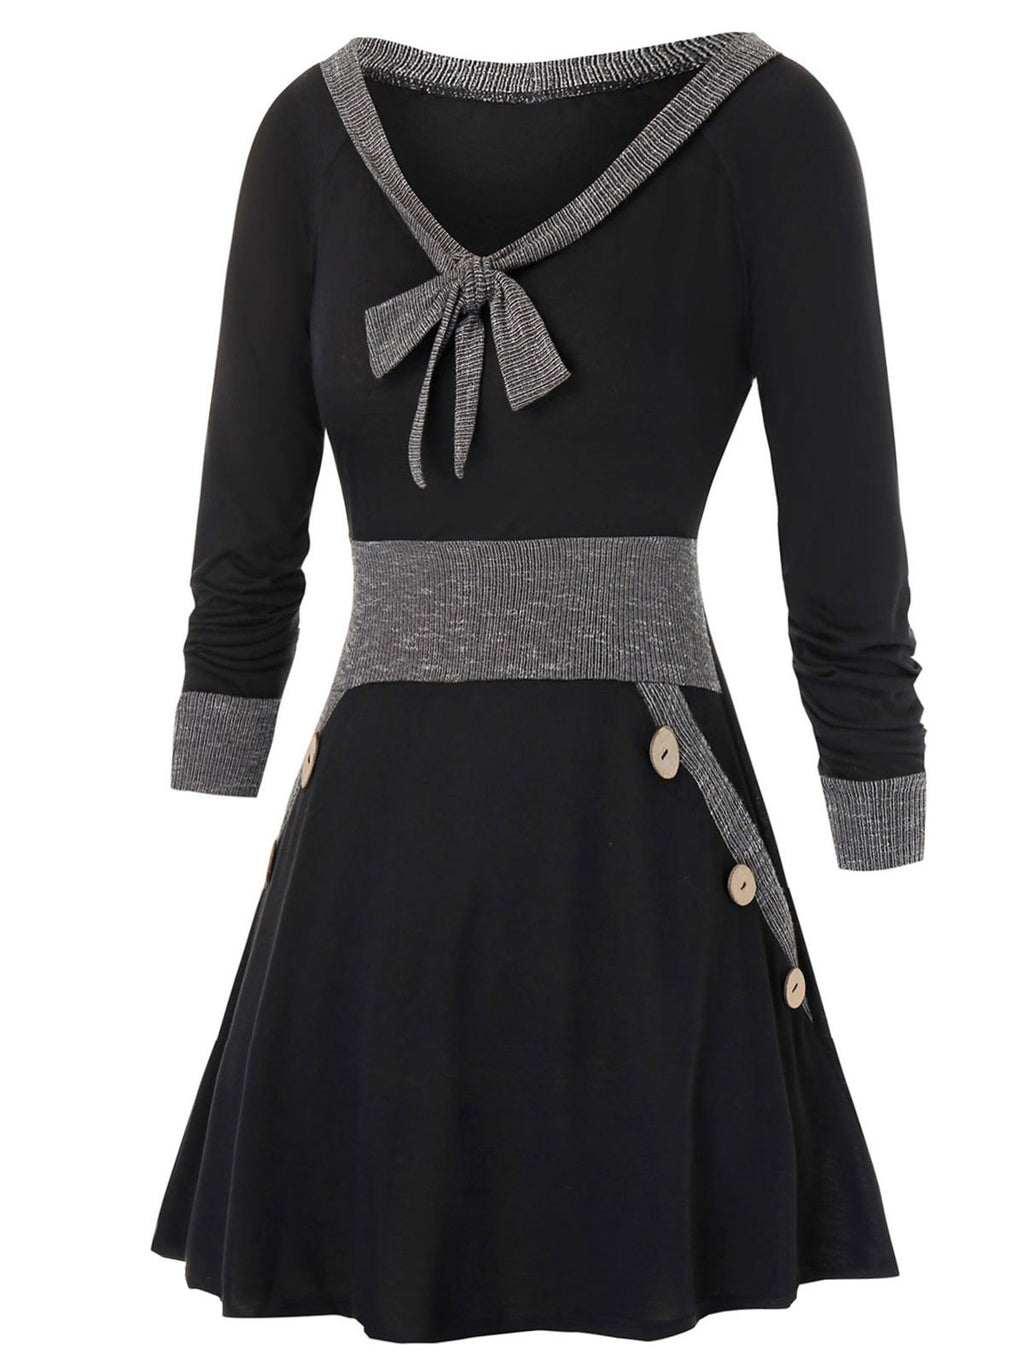 Plus Size Fit And Flare Bowknot Collar Two Tone Dress